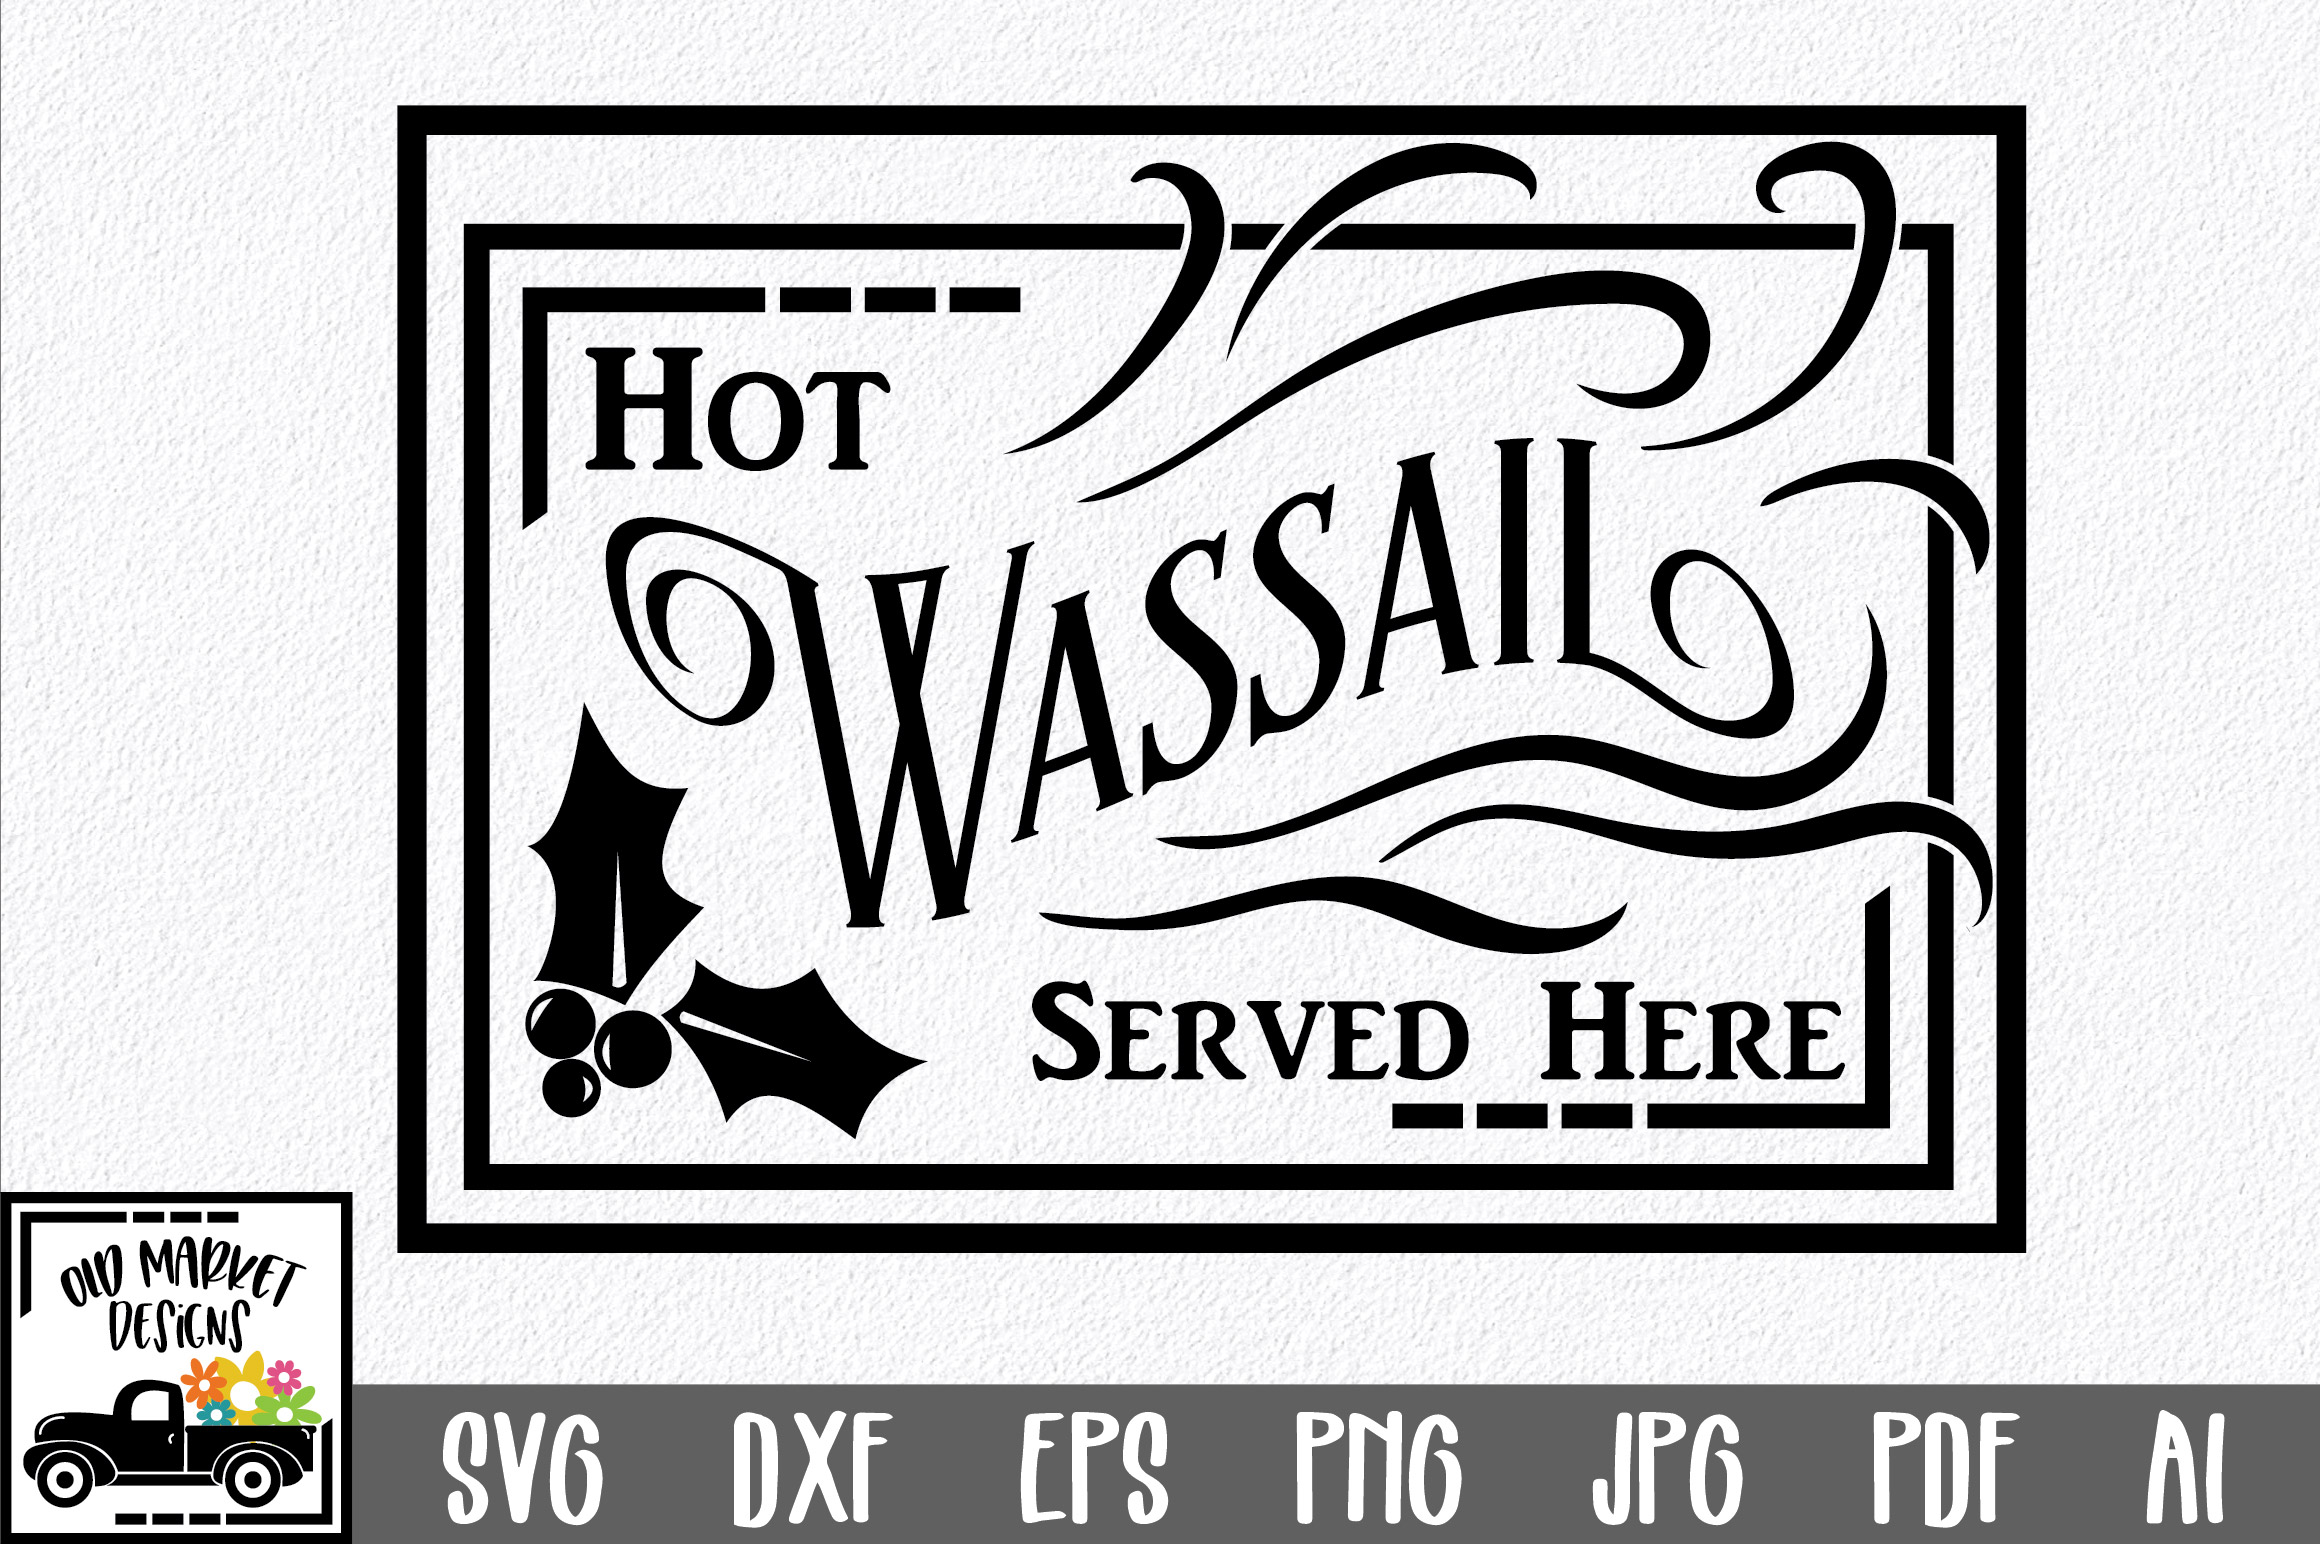 Christmas SVG Cut File - Hot Wassail SVG DXF PNG EPS JPG example image 1